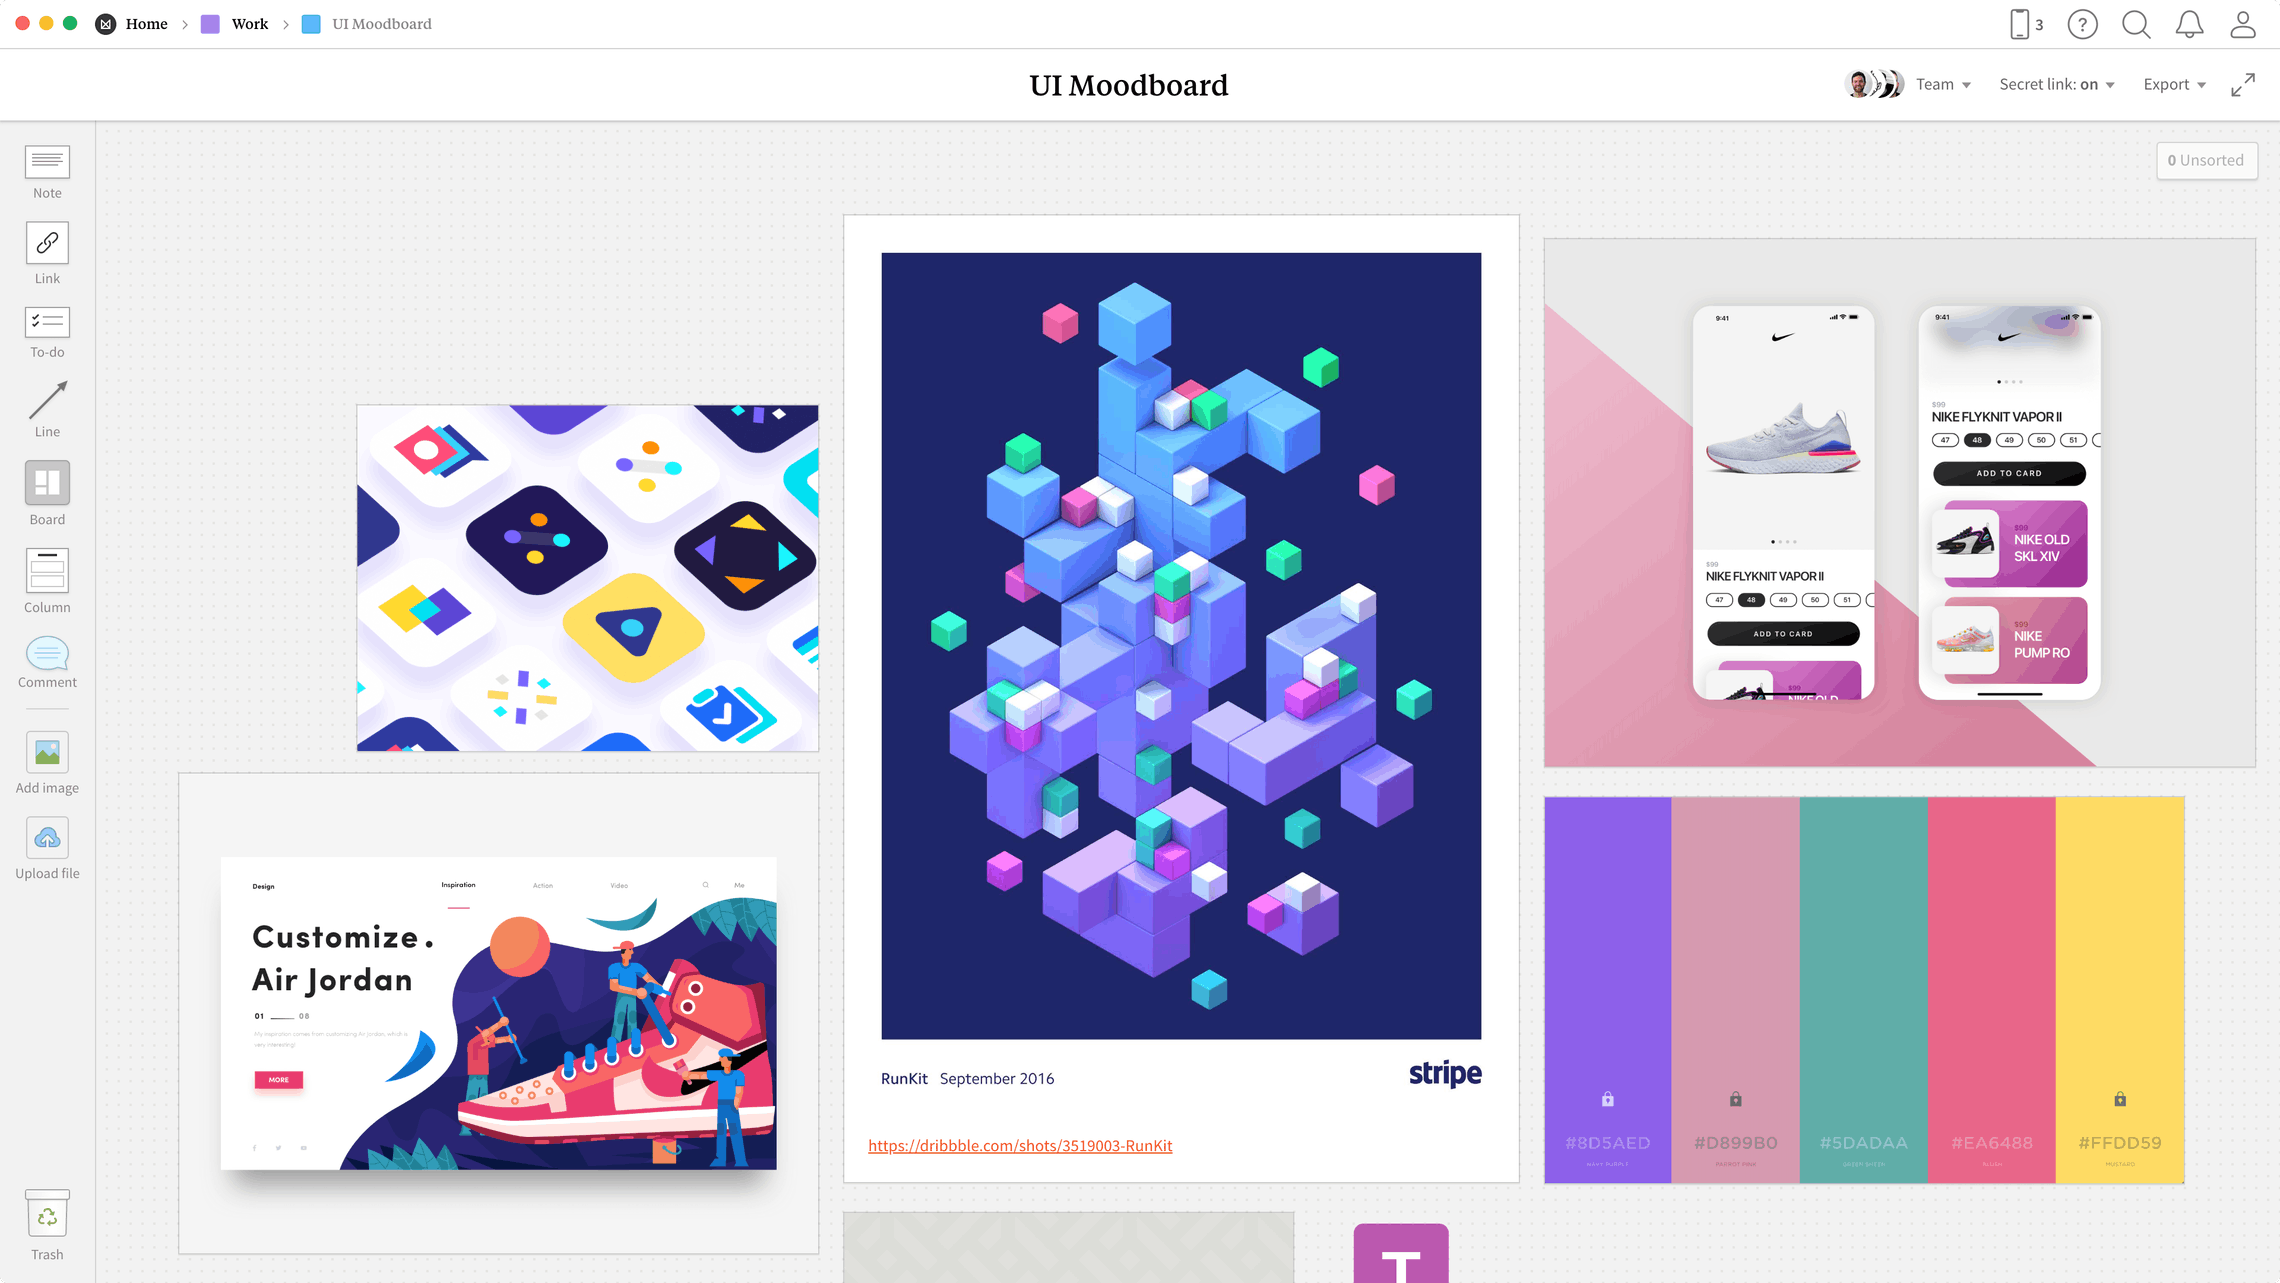 UI Moodboard Template, within the Milanote app